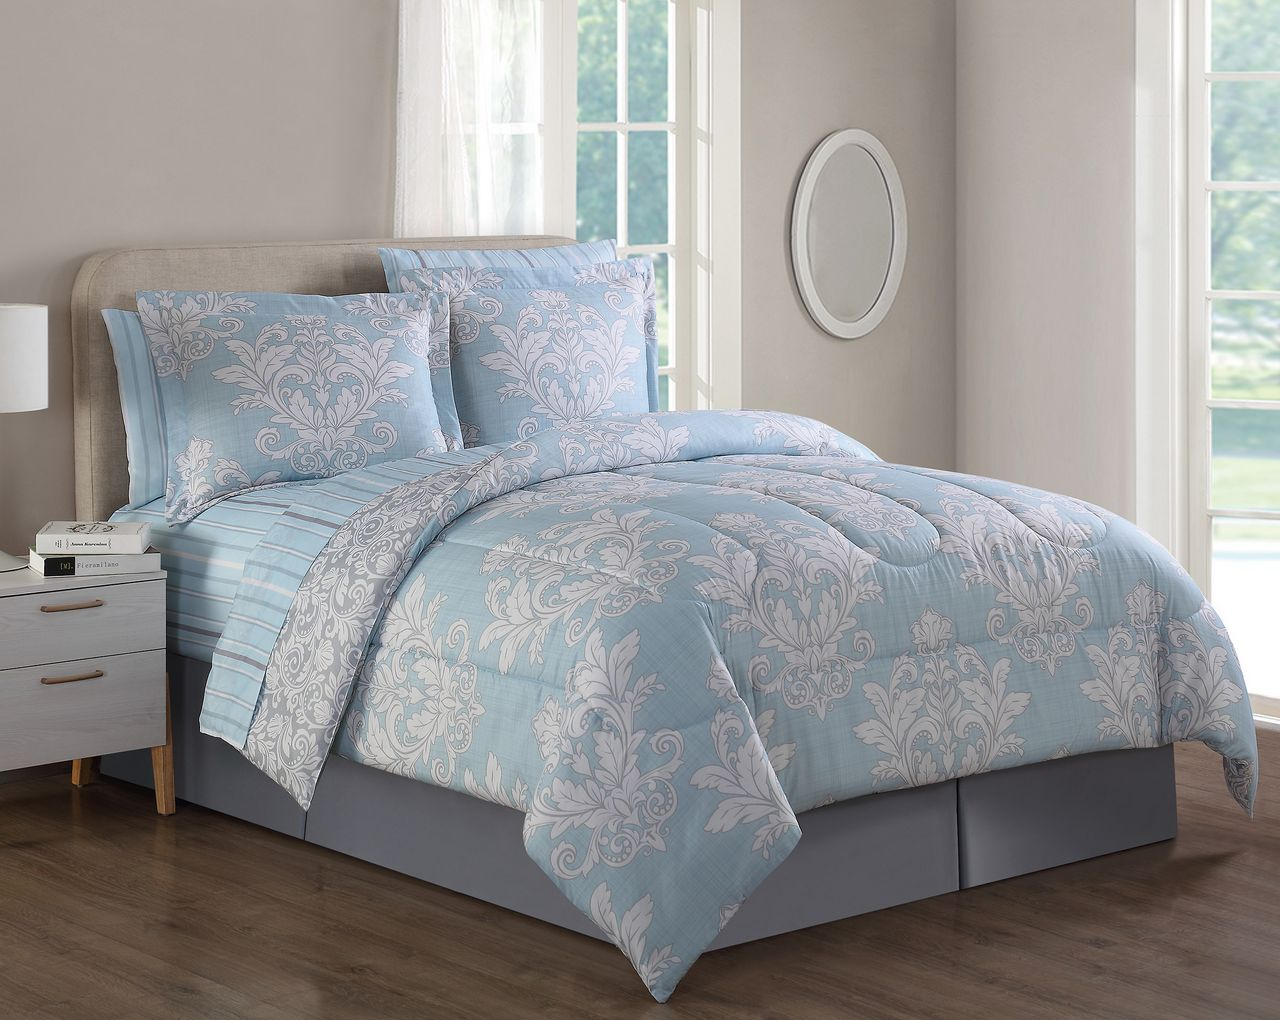 8 Piece Culpeper Light Blue Comforter Set Queen